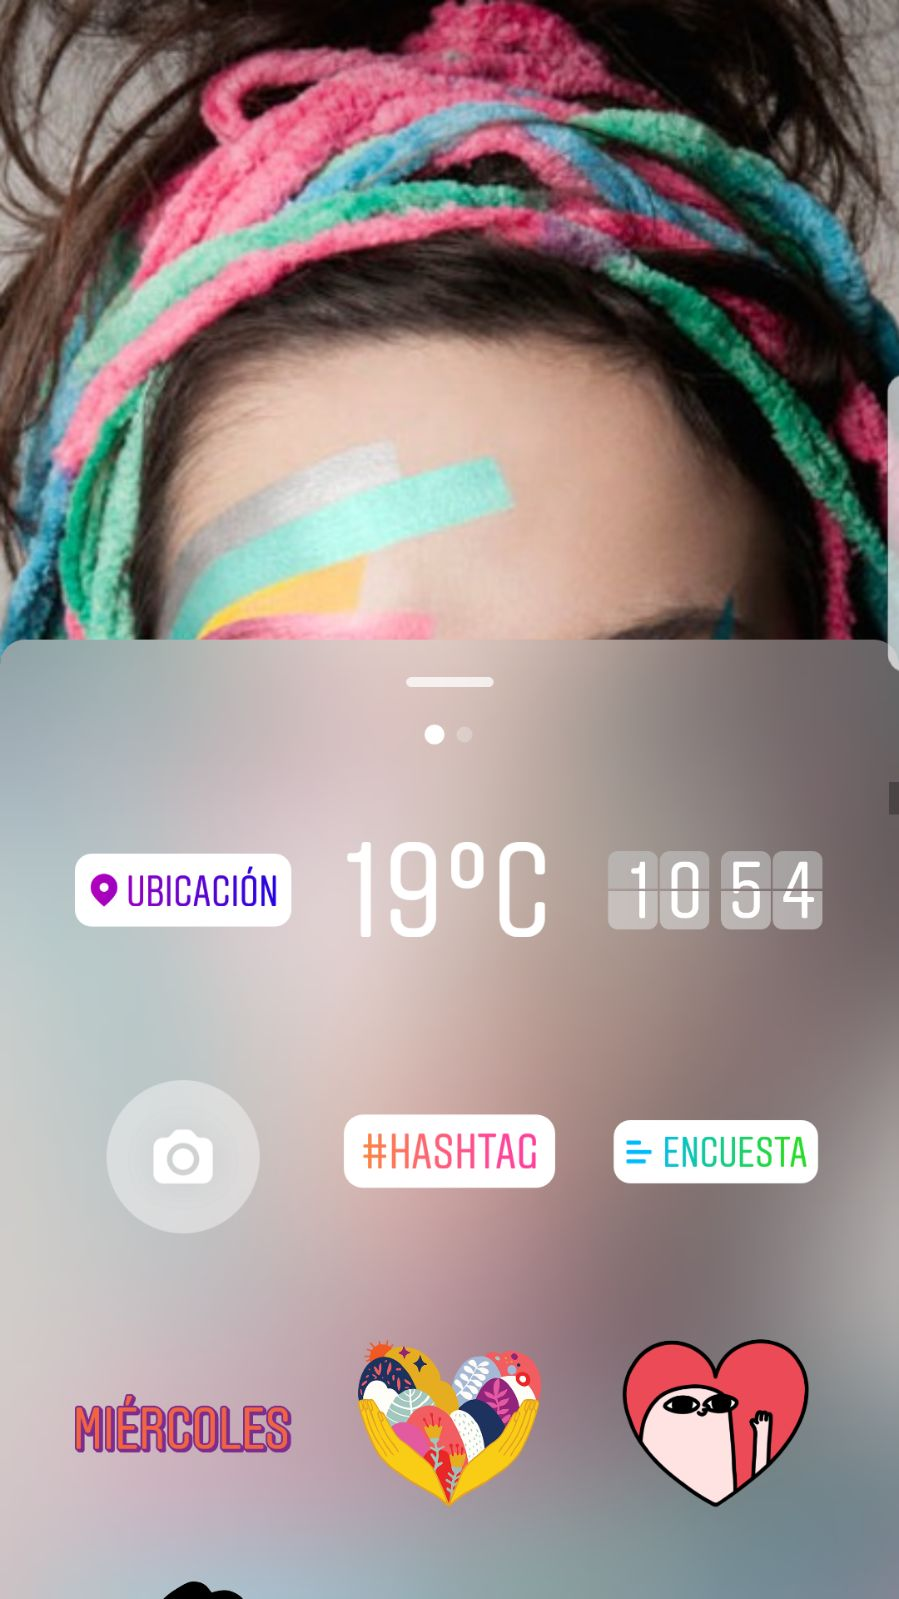 Sticker de encuesta en Instagram Stories